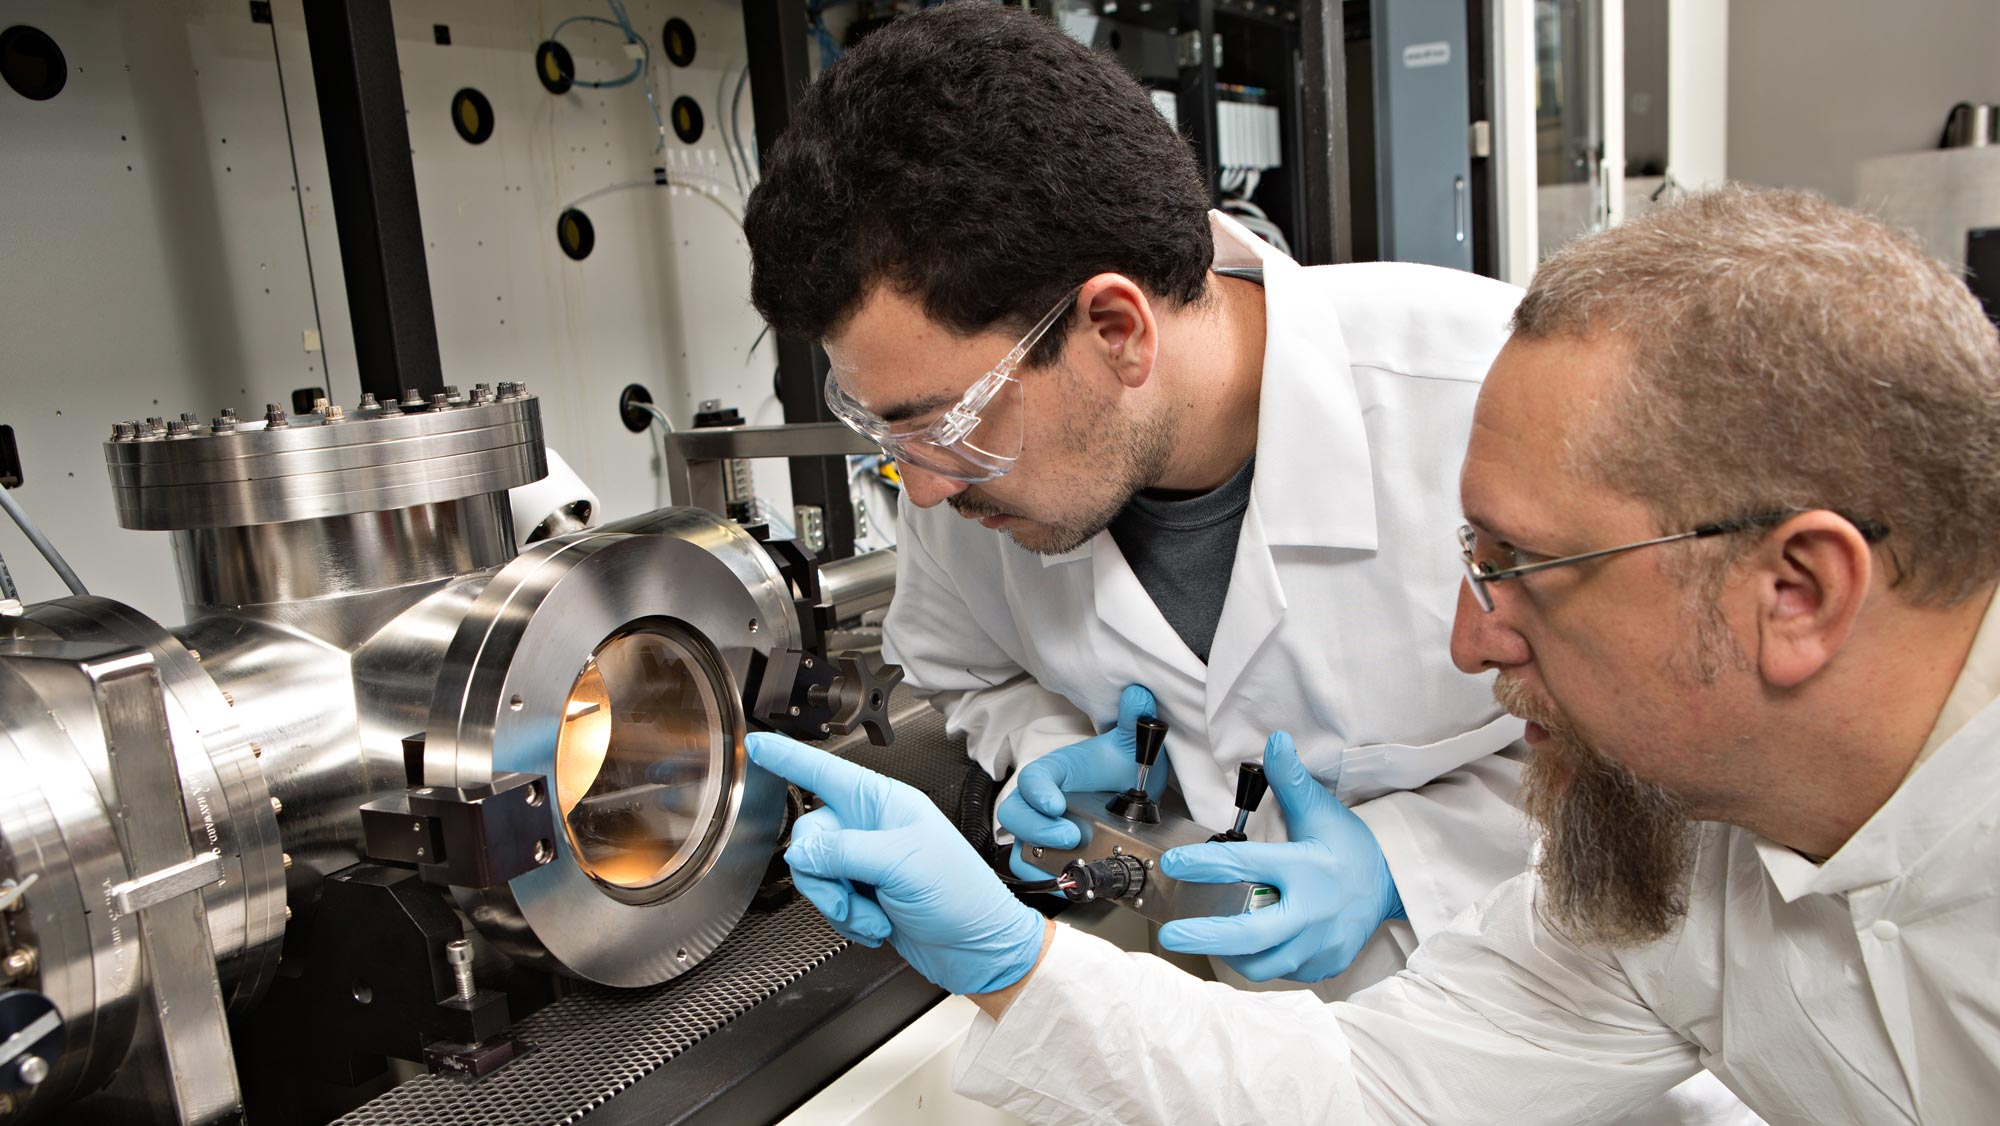 A male researcher with dark hair and goggles and an older male researcher with graying hair and a long beard and glasses observe equipment in a lab.